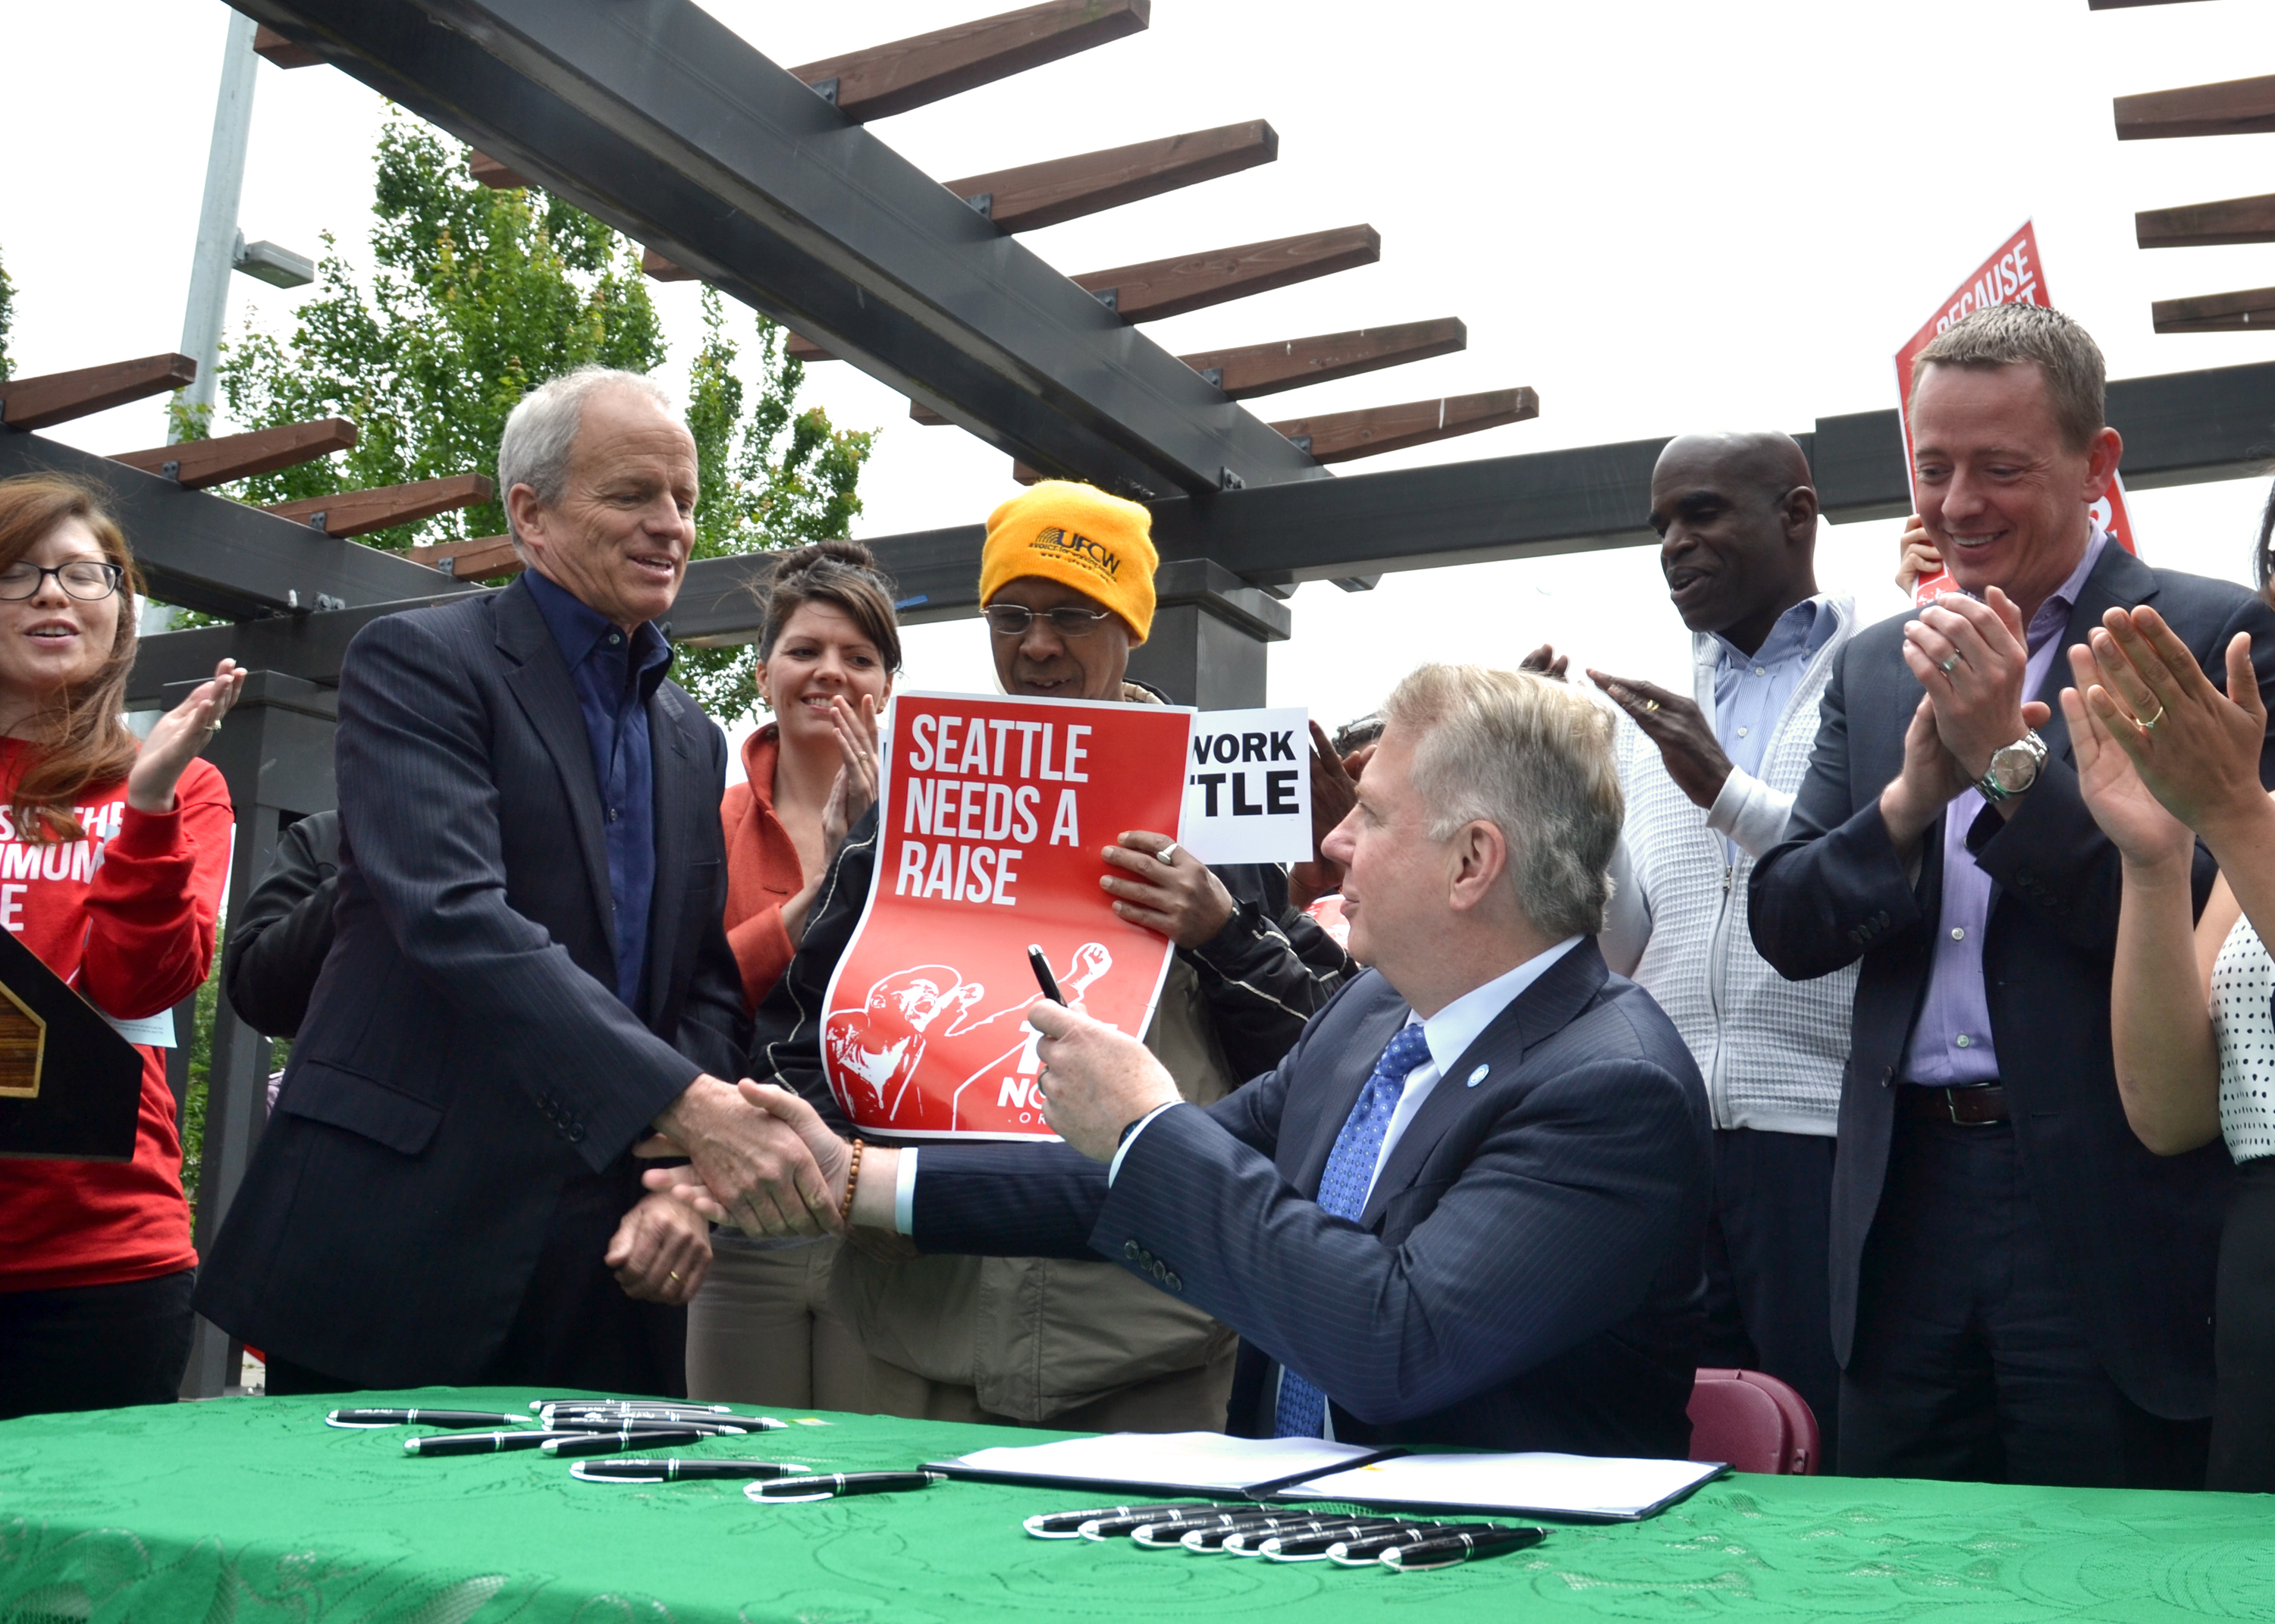 Seattle Mayor Ed Murray signed legislation earlier this year to raise the city'sminimum wage to $15 an hour. Credit: City of Seattle